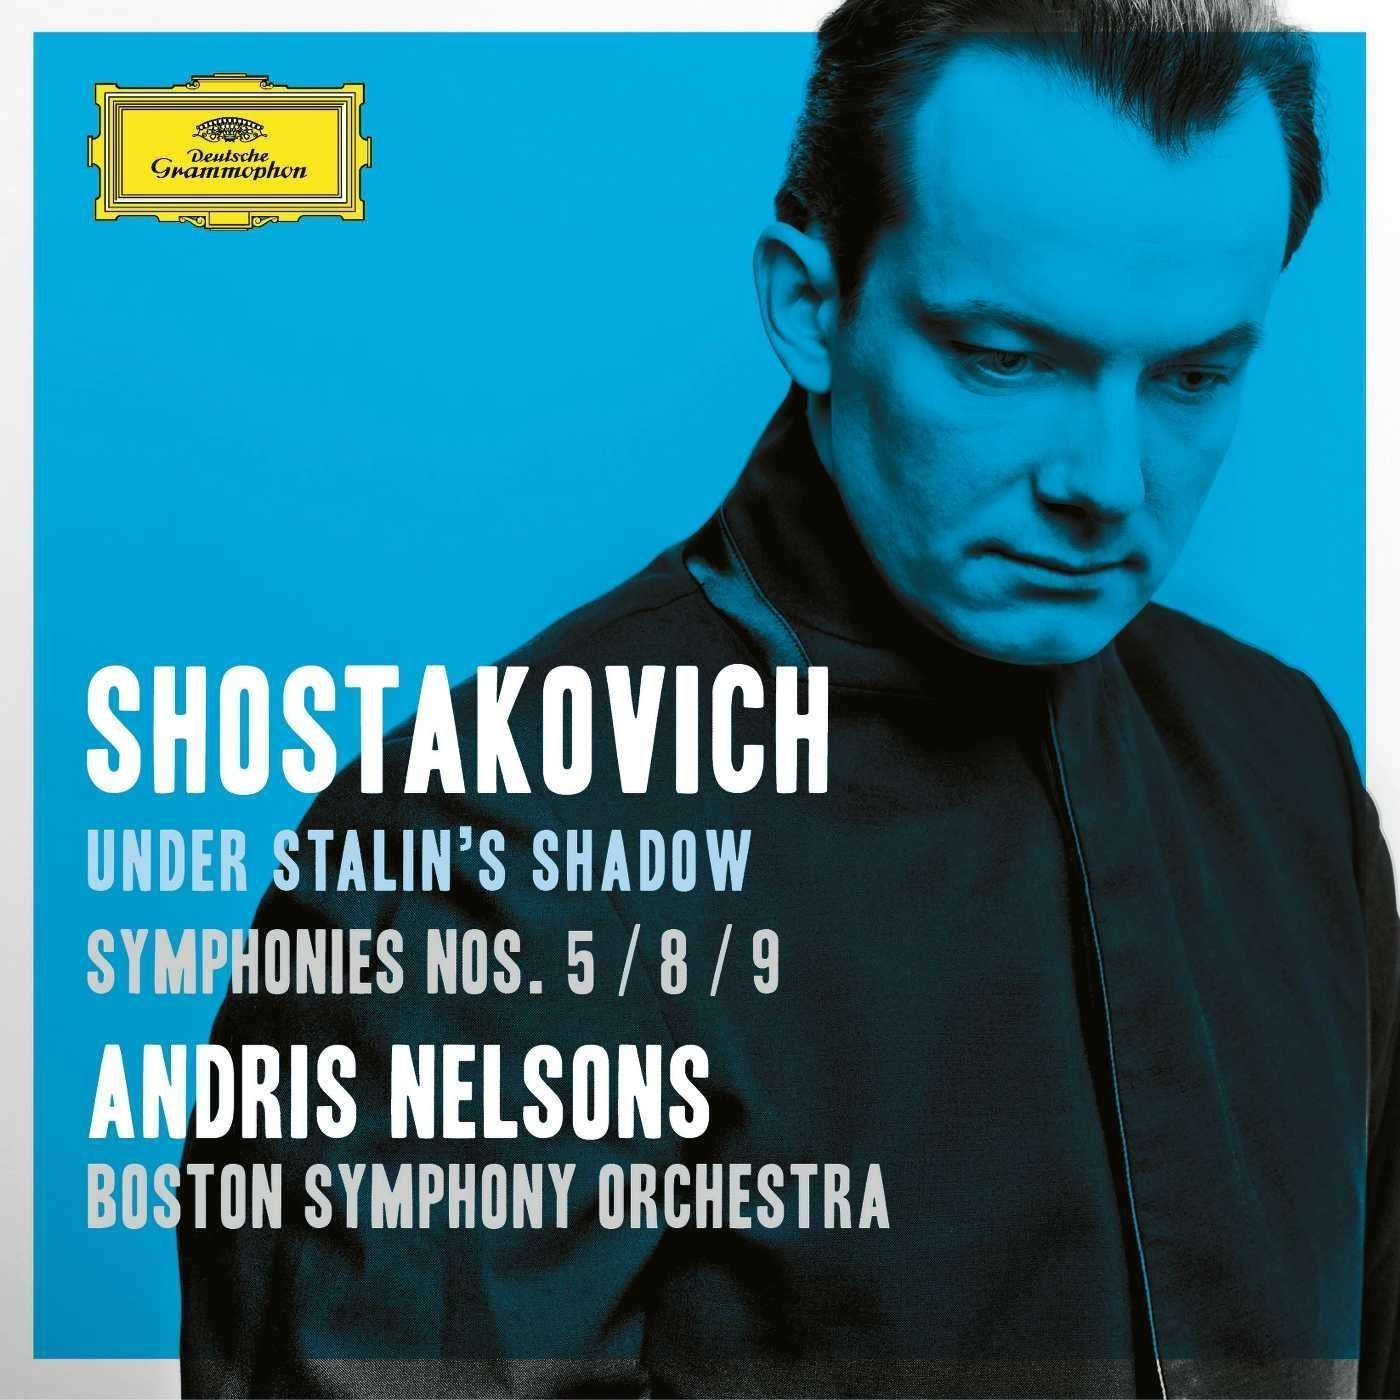 the music salon 2016 wow not only shostakovich but three serious symphonies on deutsche grammophon an entirely respectable conductor and orchestra